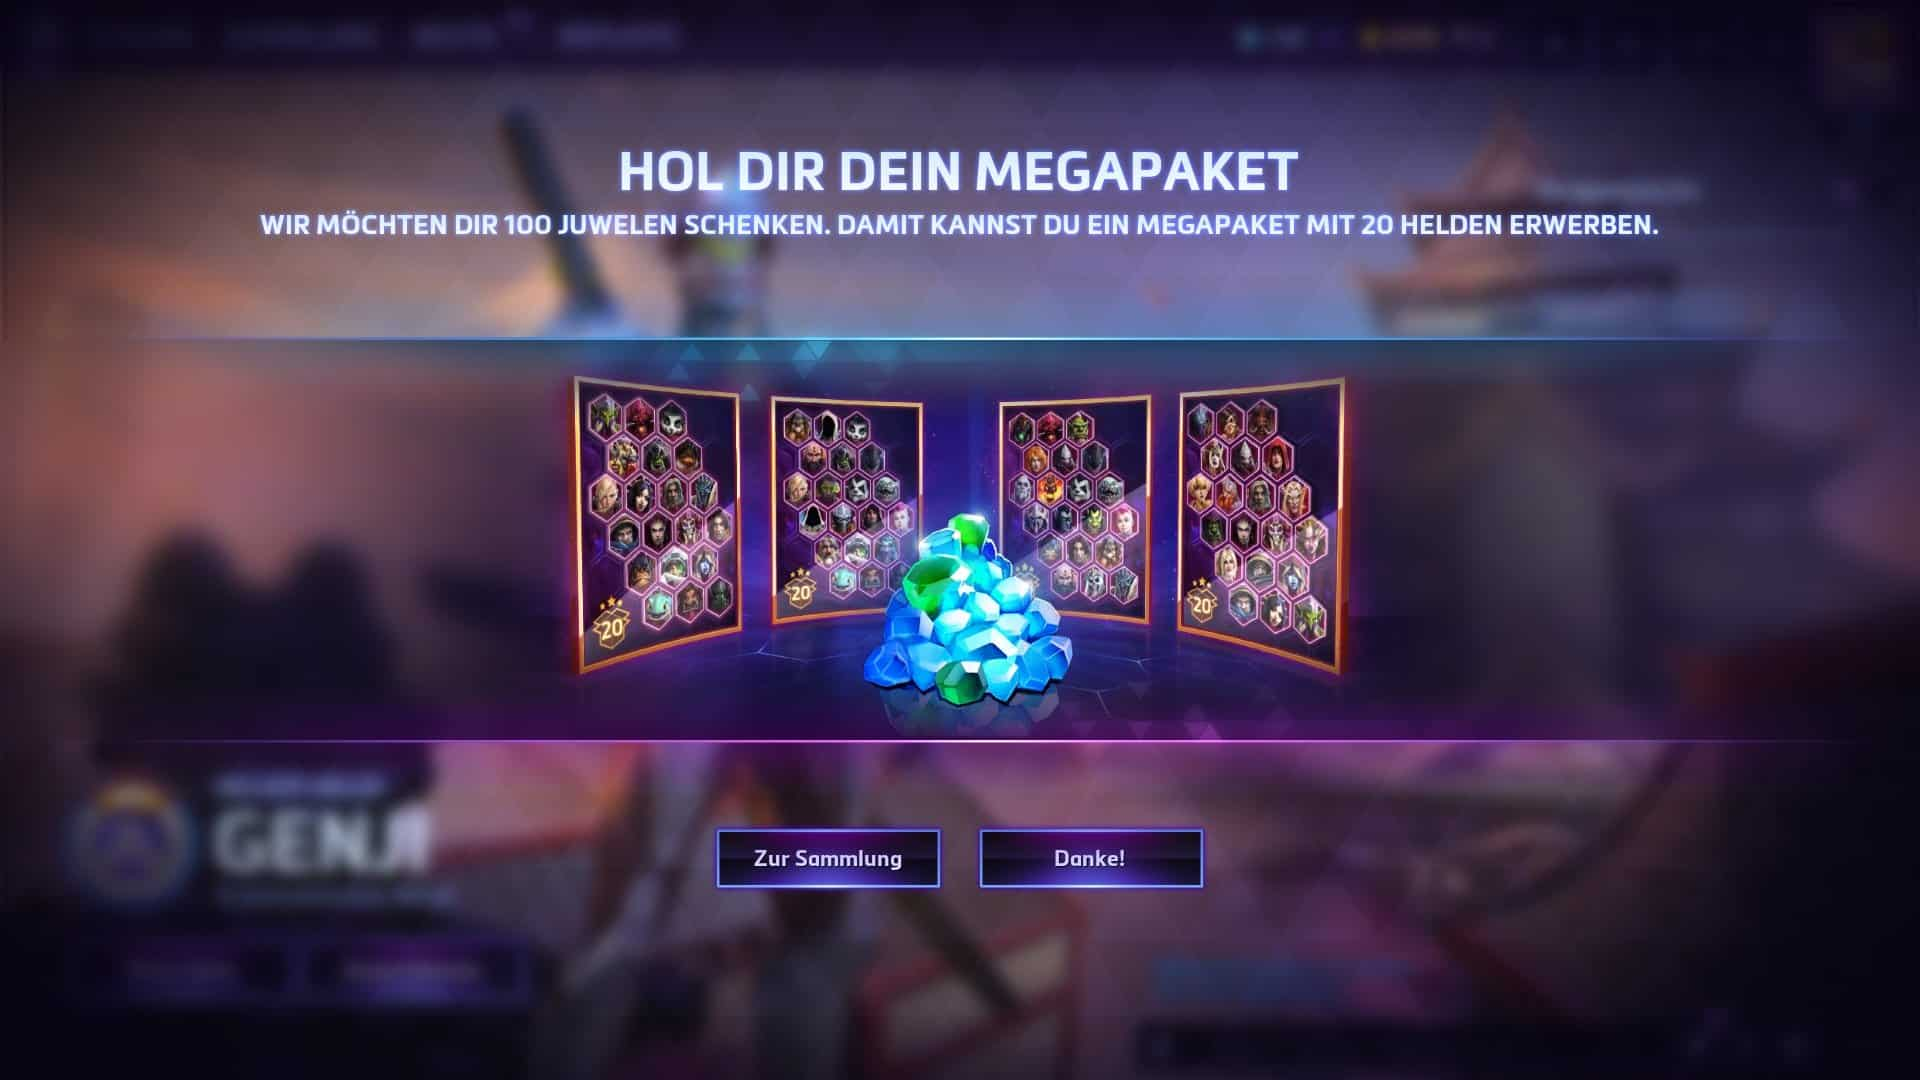 Heroes of the Storm - Megapaket - 100 Juwelen - 20 Helden